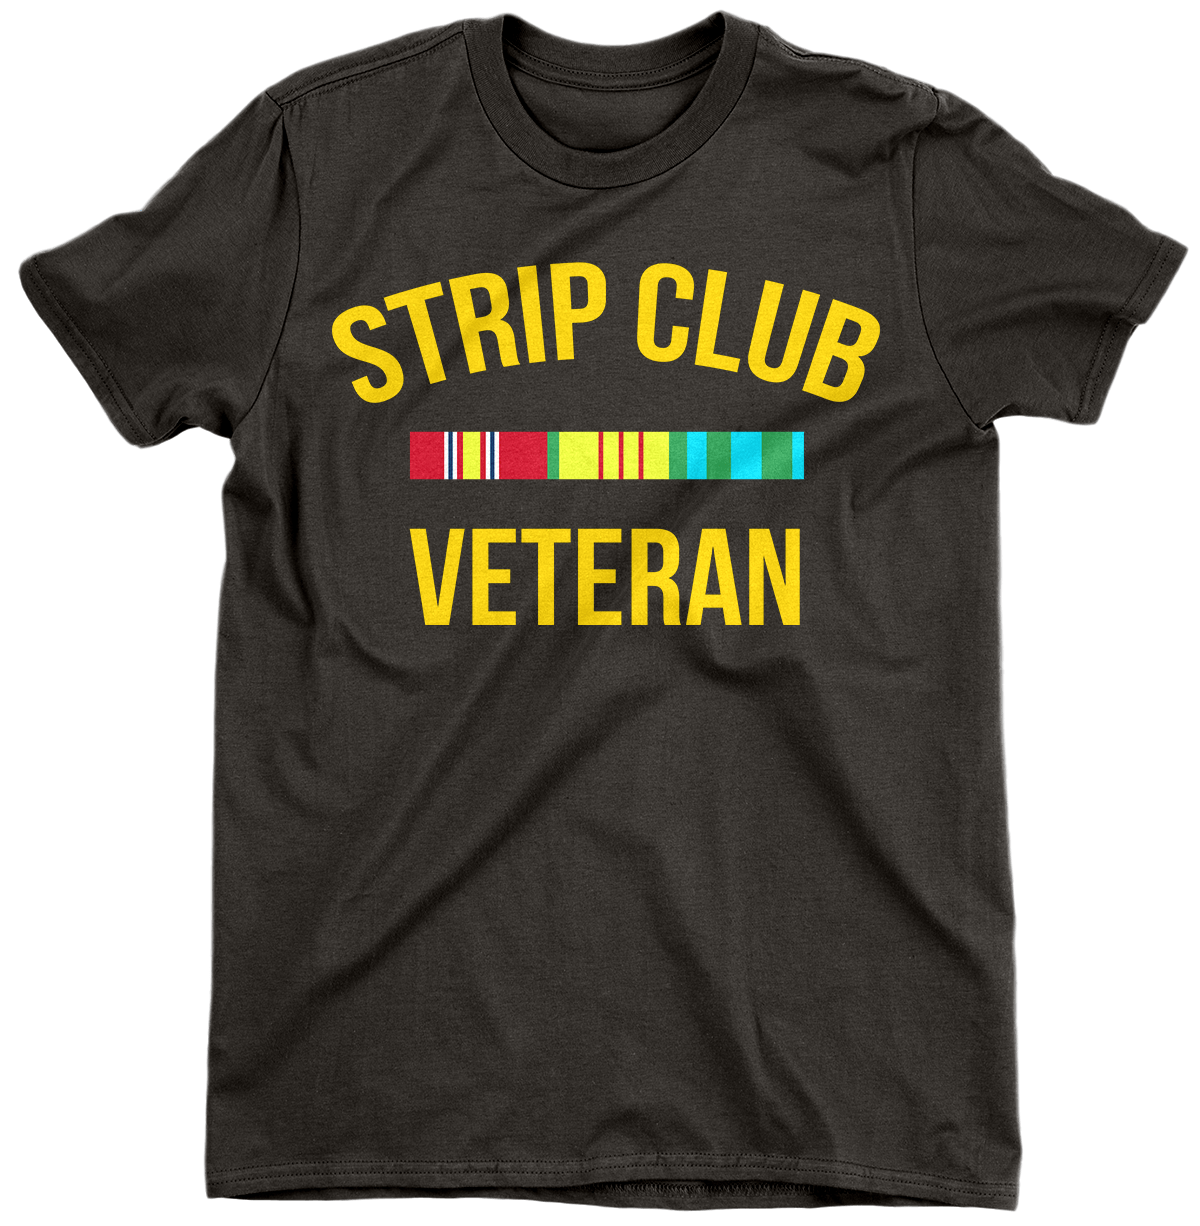 Strip Club Veteran